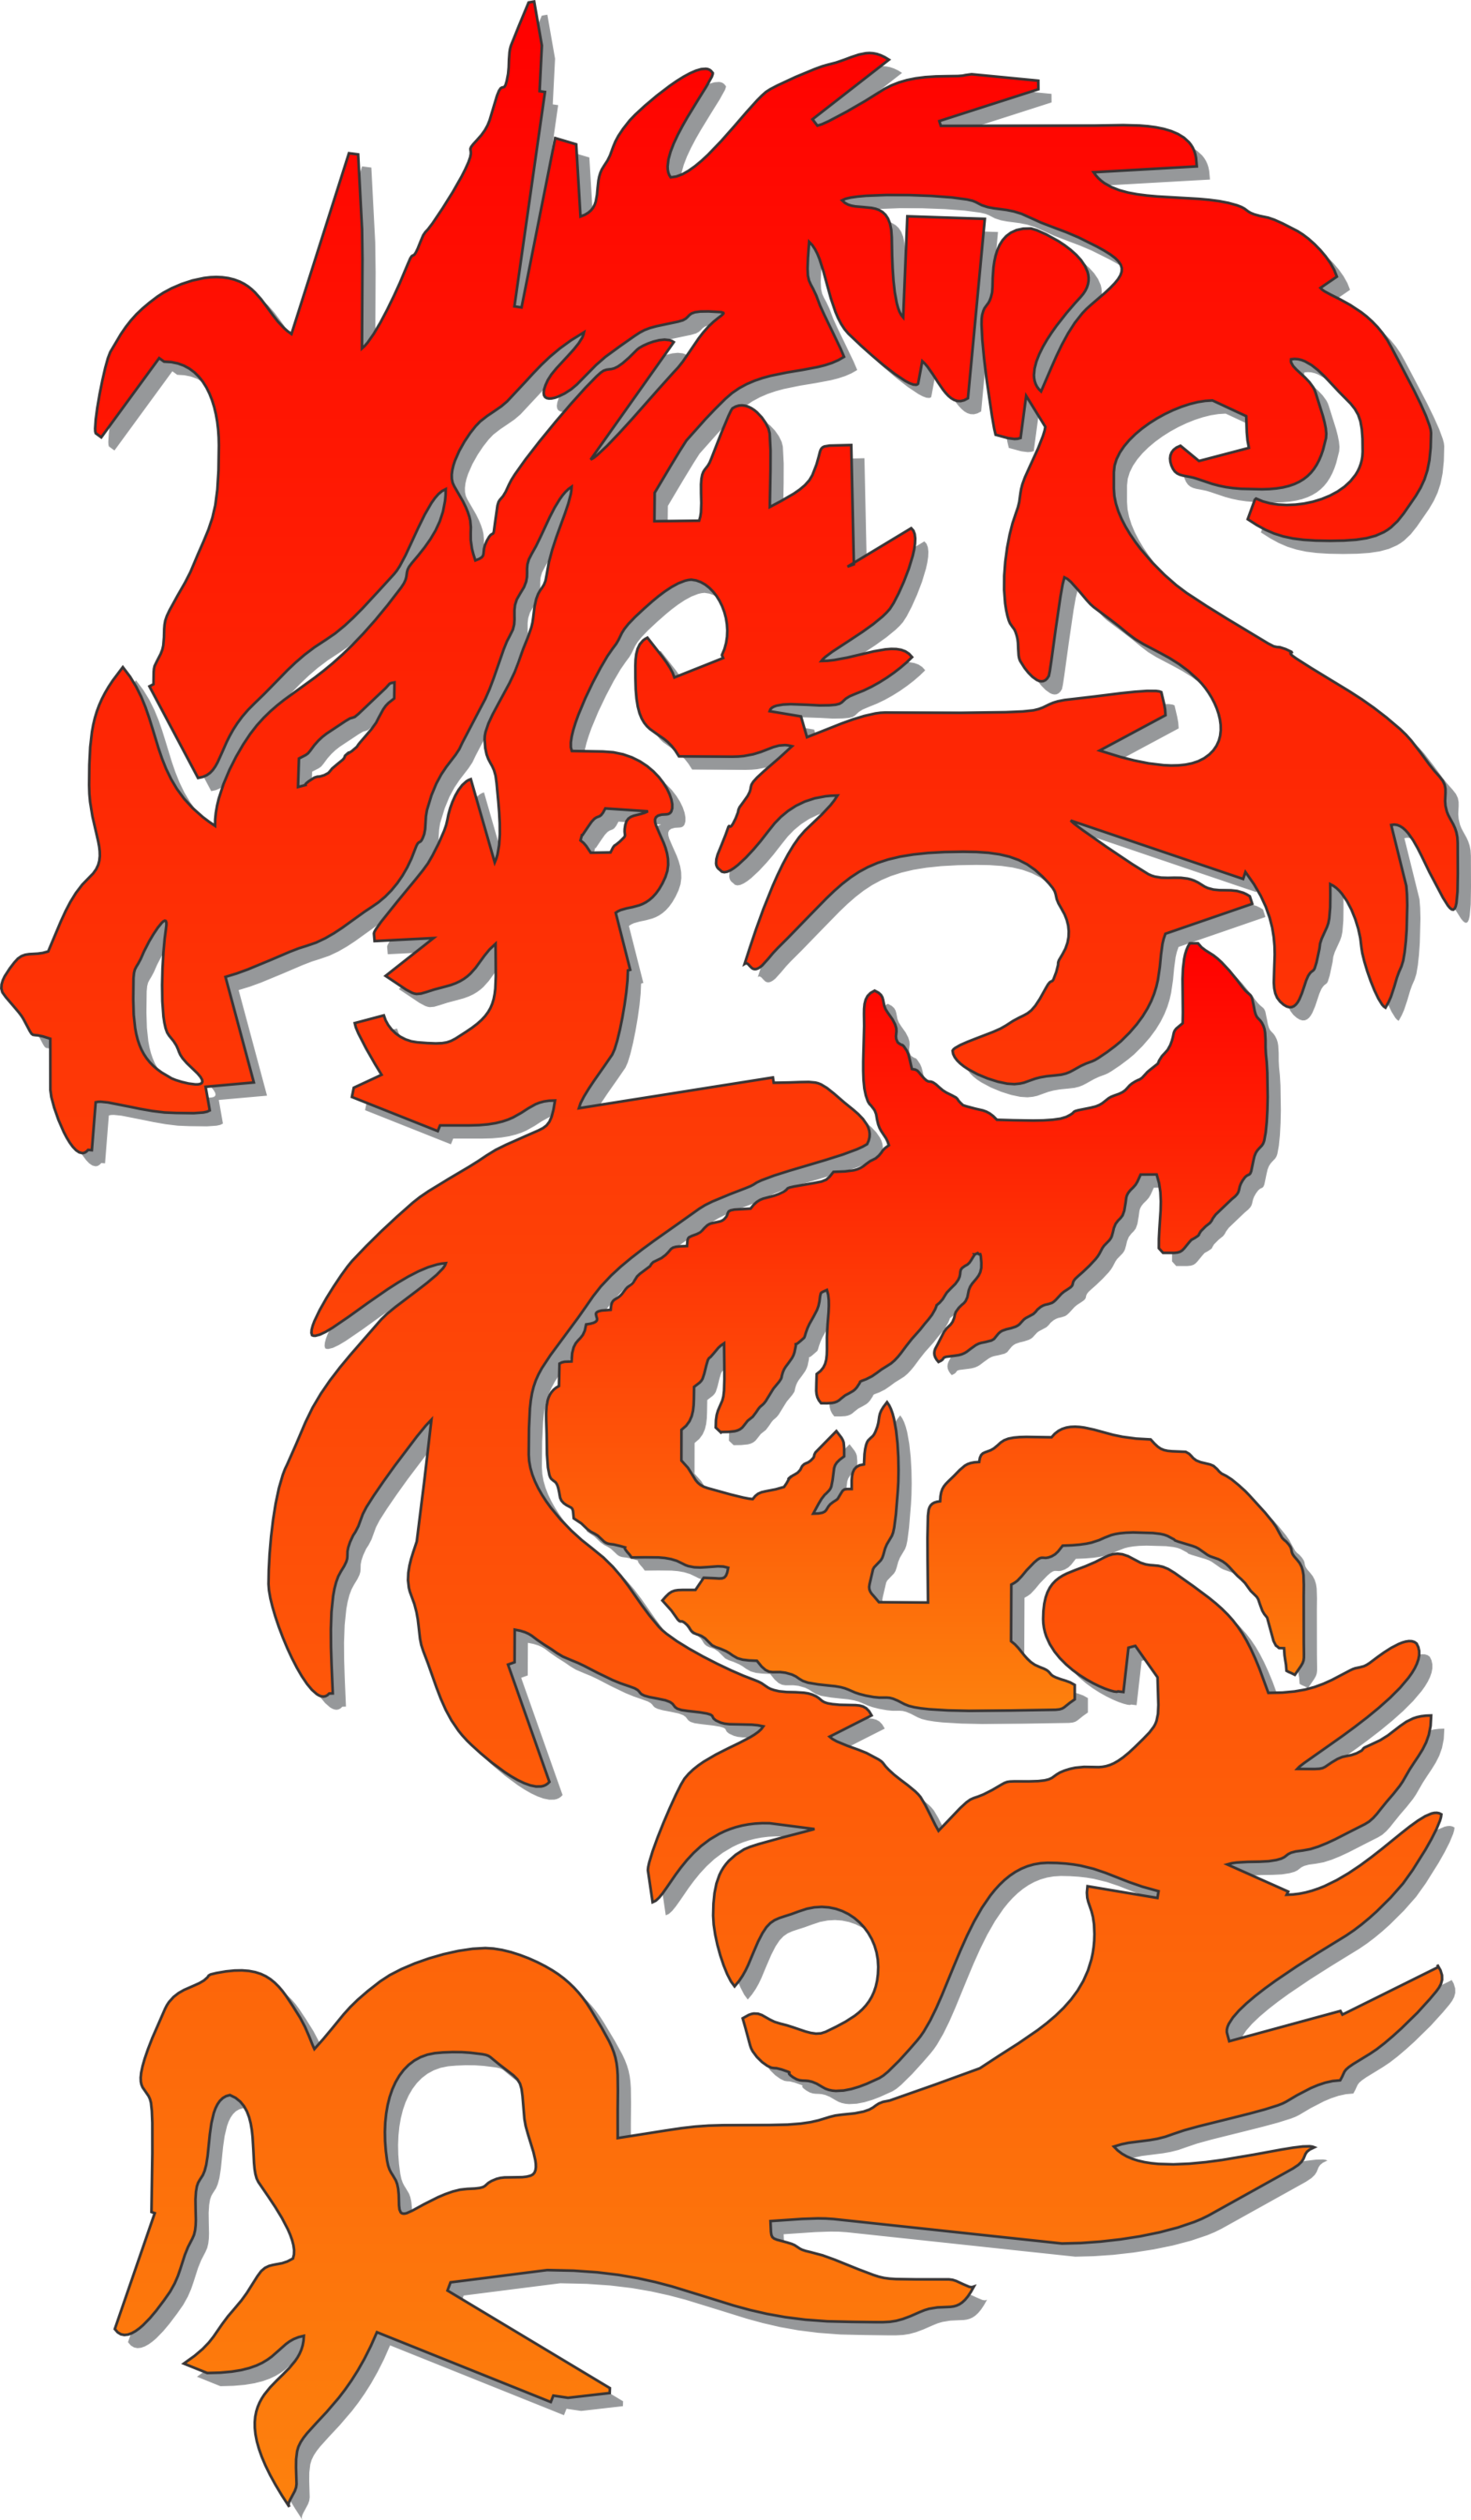 Chinese dragon clip art clipart free to use clip art resource.